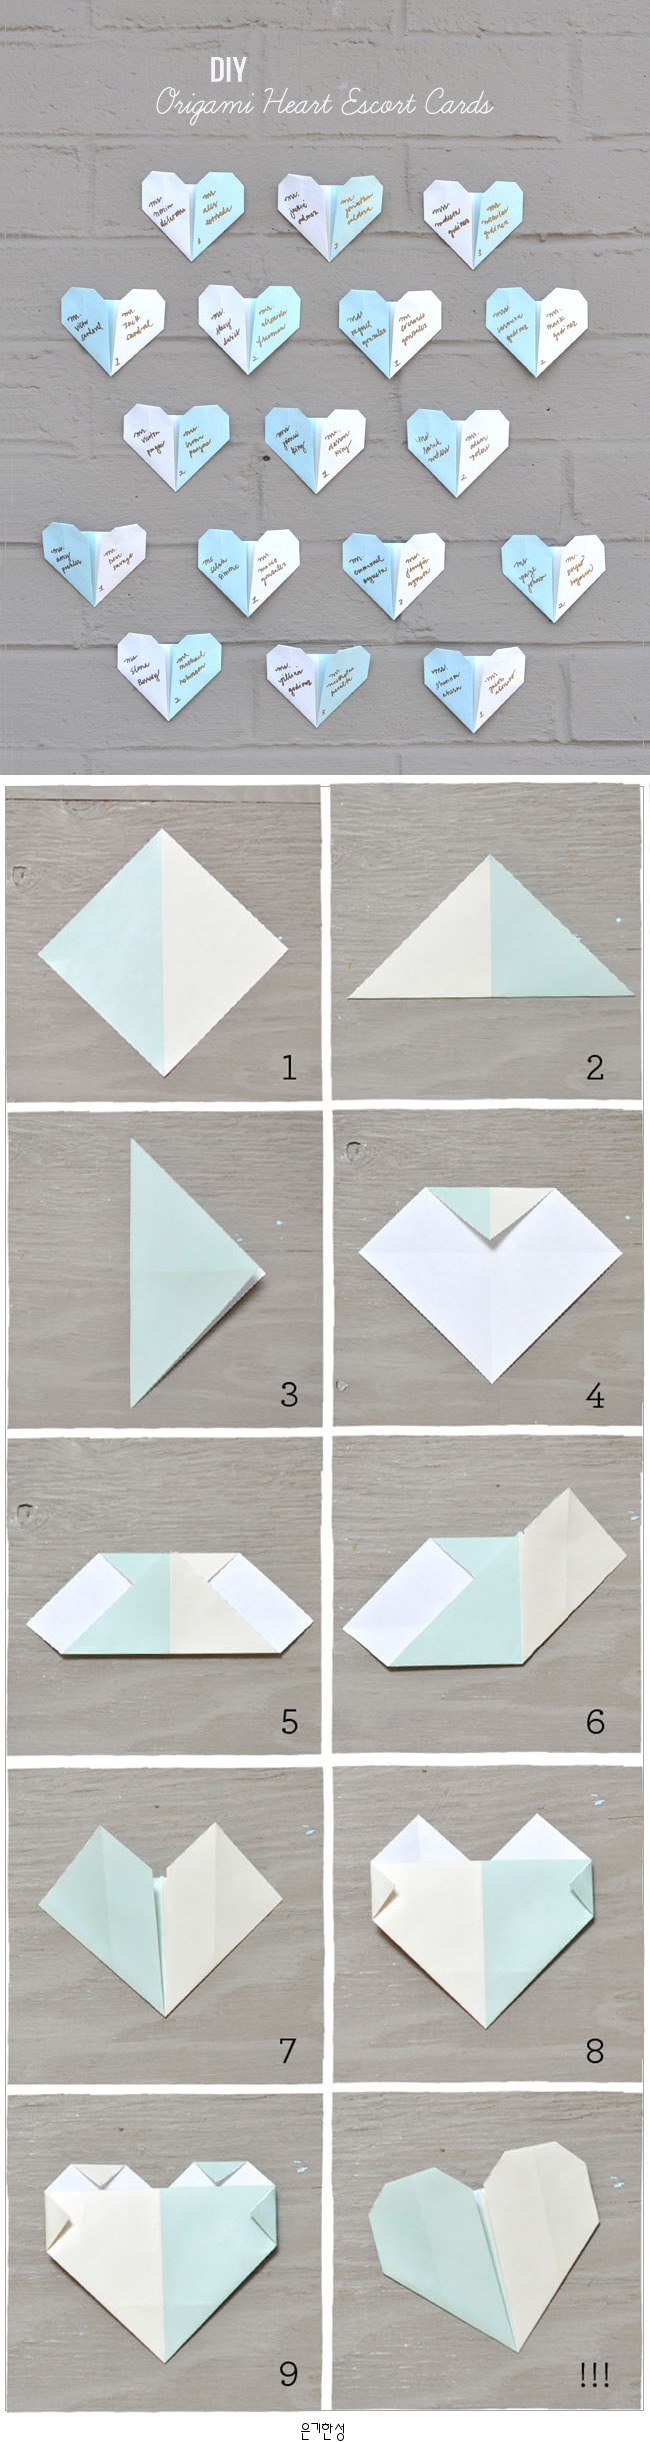 Diy origami heart escort cards stuff to try diy origami heart escort cards jeuxipadfo Choice Image